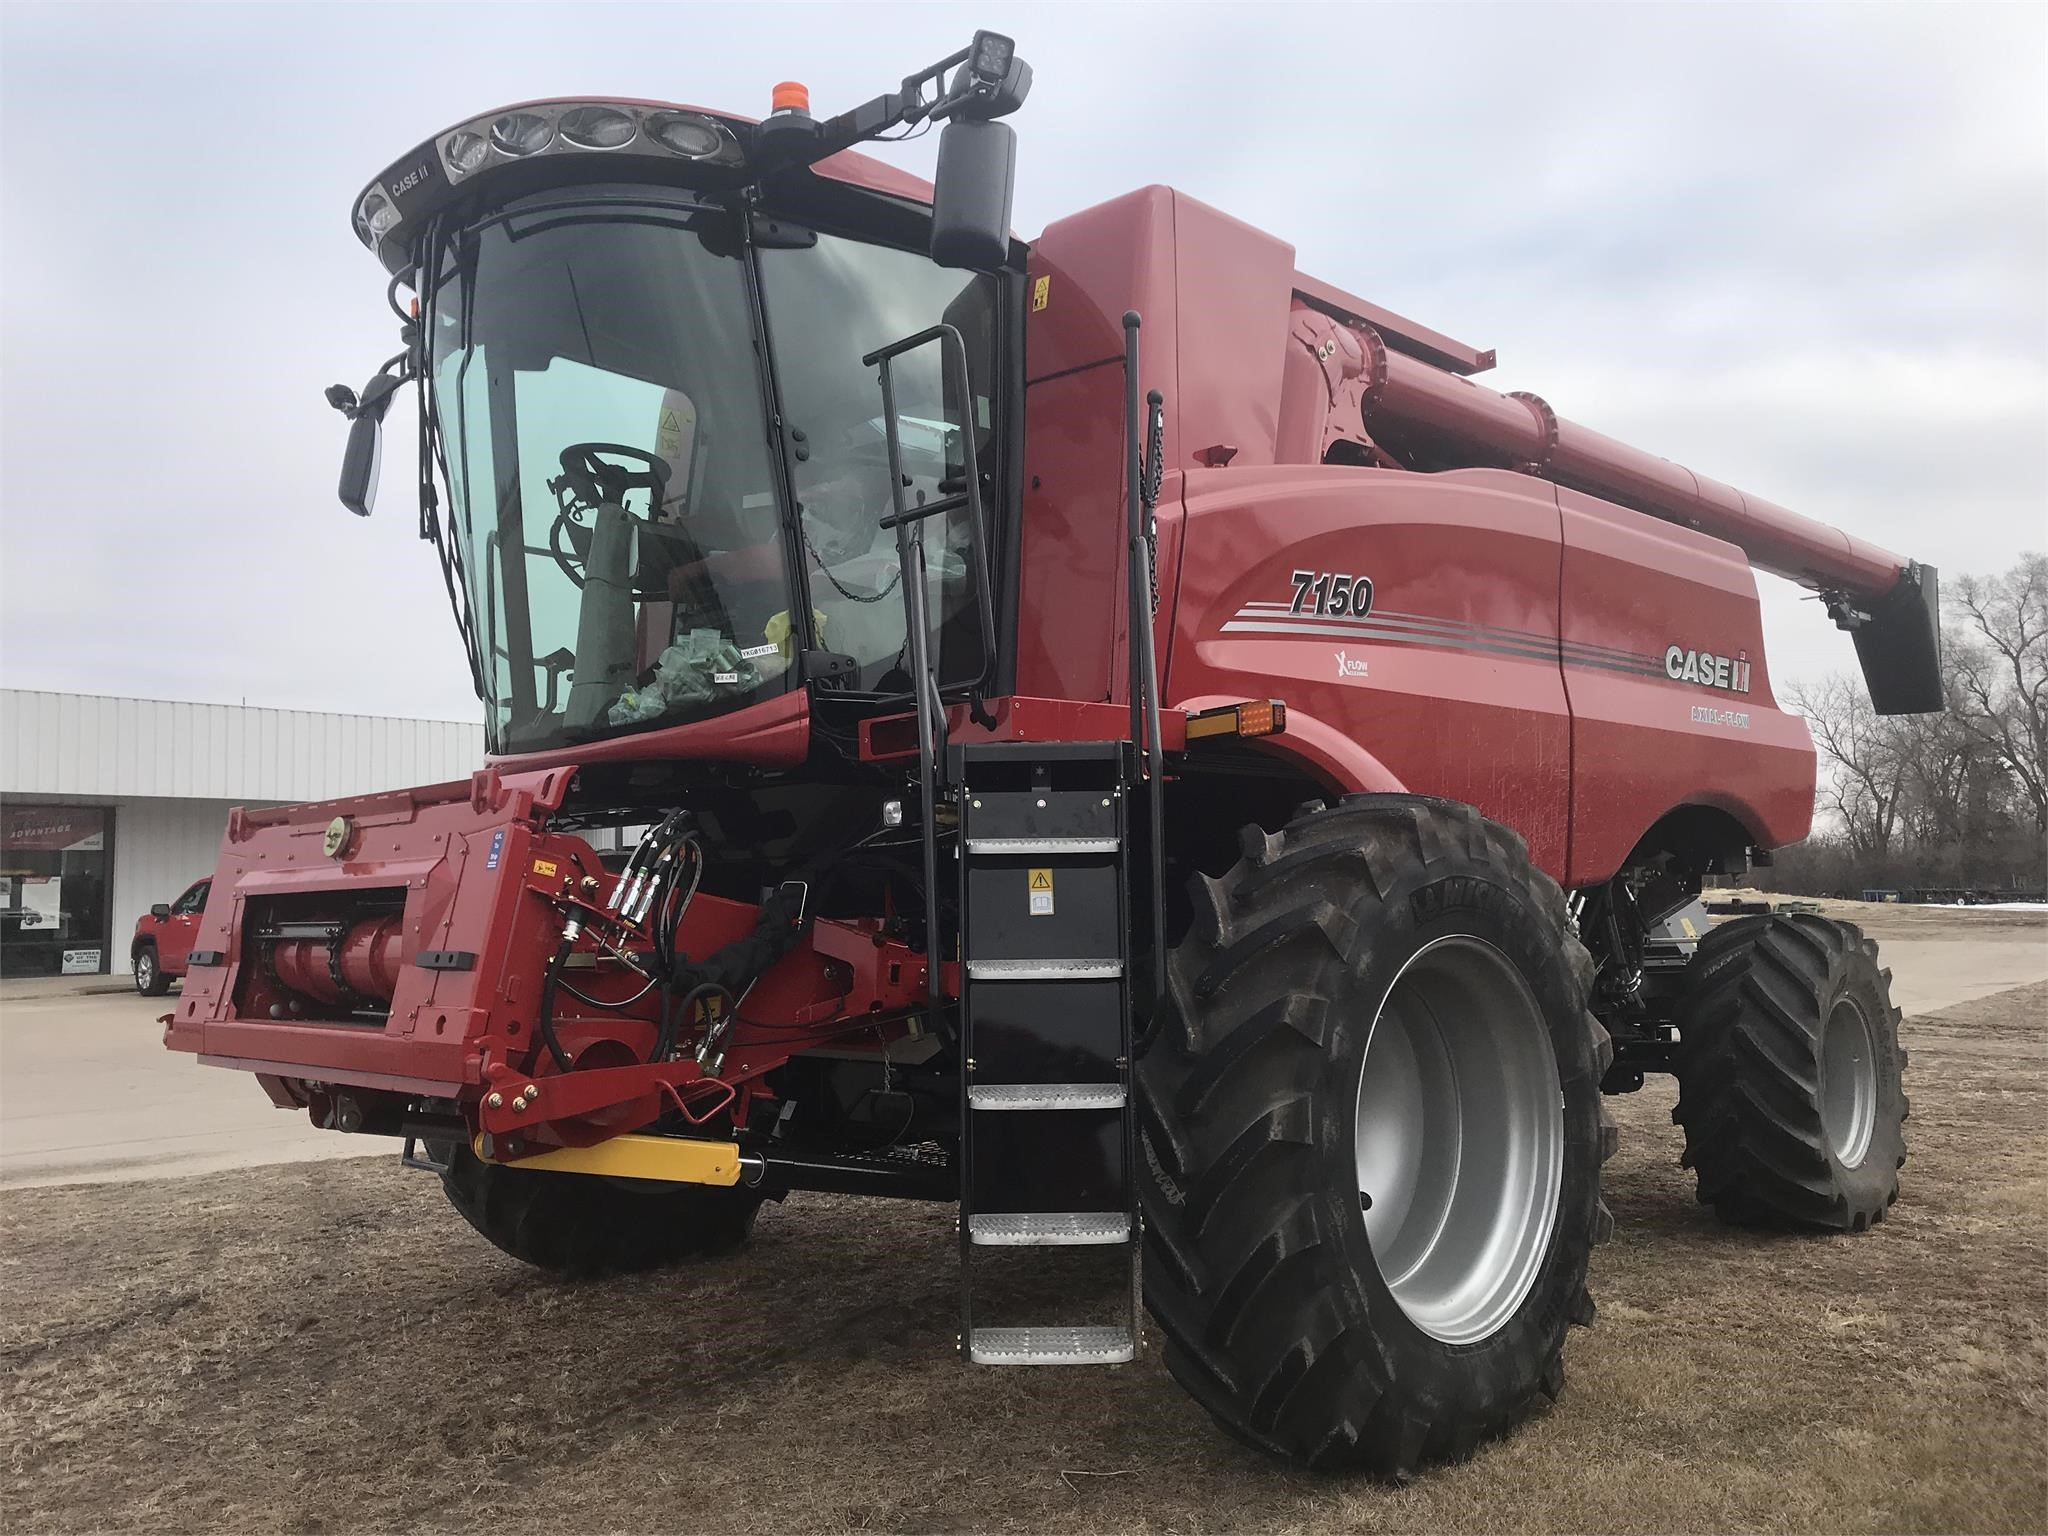 2020 Case IH 7150 Tractor